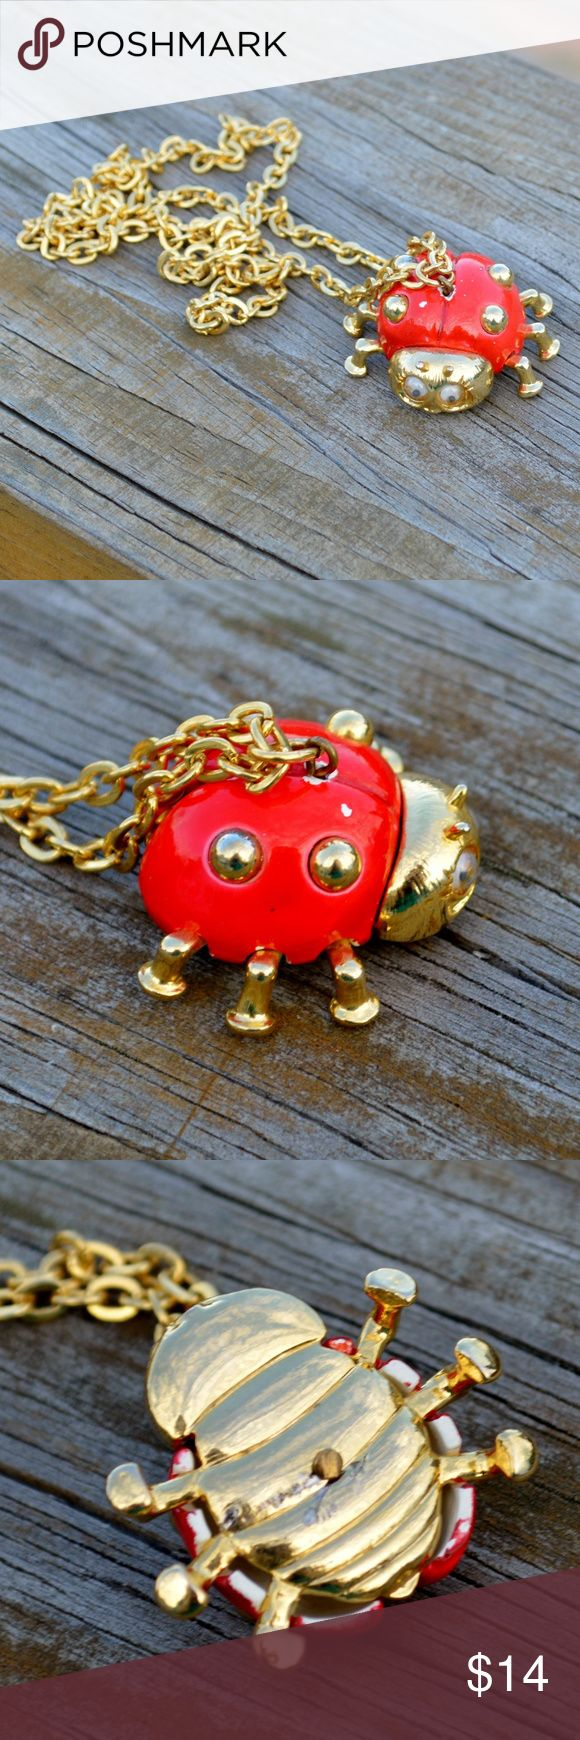 Vintage Red Enamel Gold Ladybug Kitsch Necklace Up for sale is one necklace, as pictured. It features a gold tone chain holding a gold tone ladybug pendant with plastic eyes. There is some damage due to age (some chipping to the red enamel). It comes as shown, so please reference pictures for condition and design. The chain is about 24 inches long, and the ladybug measures about 1.25 x 1.25 x .5 inches. Jewelry Necklaces